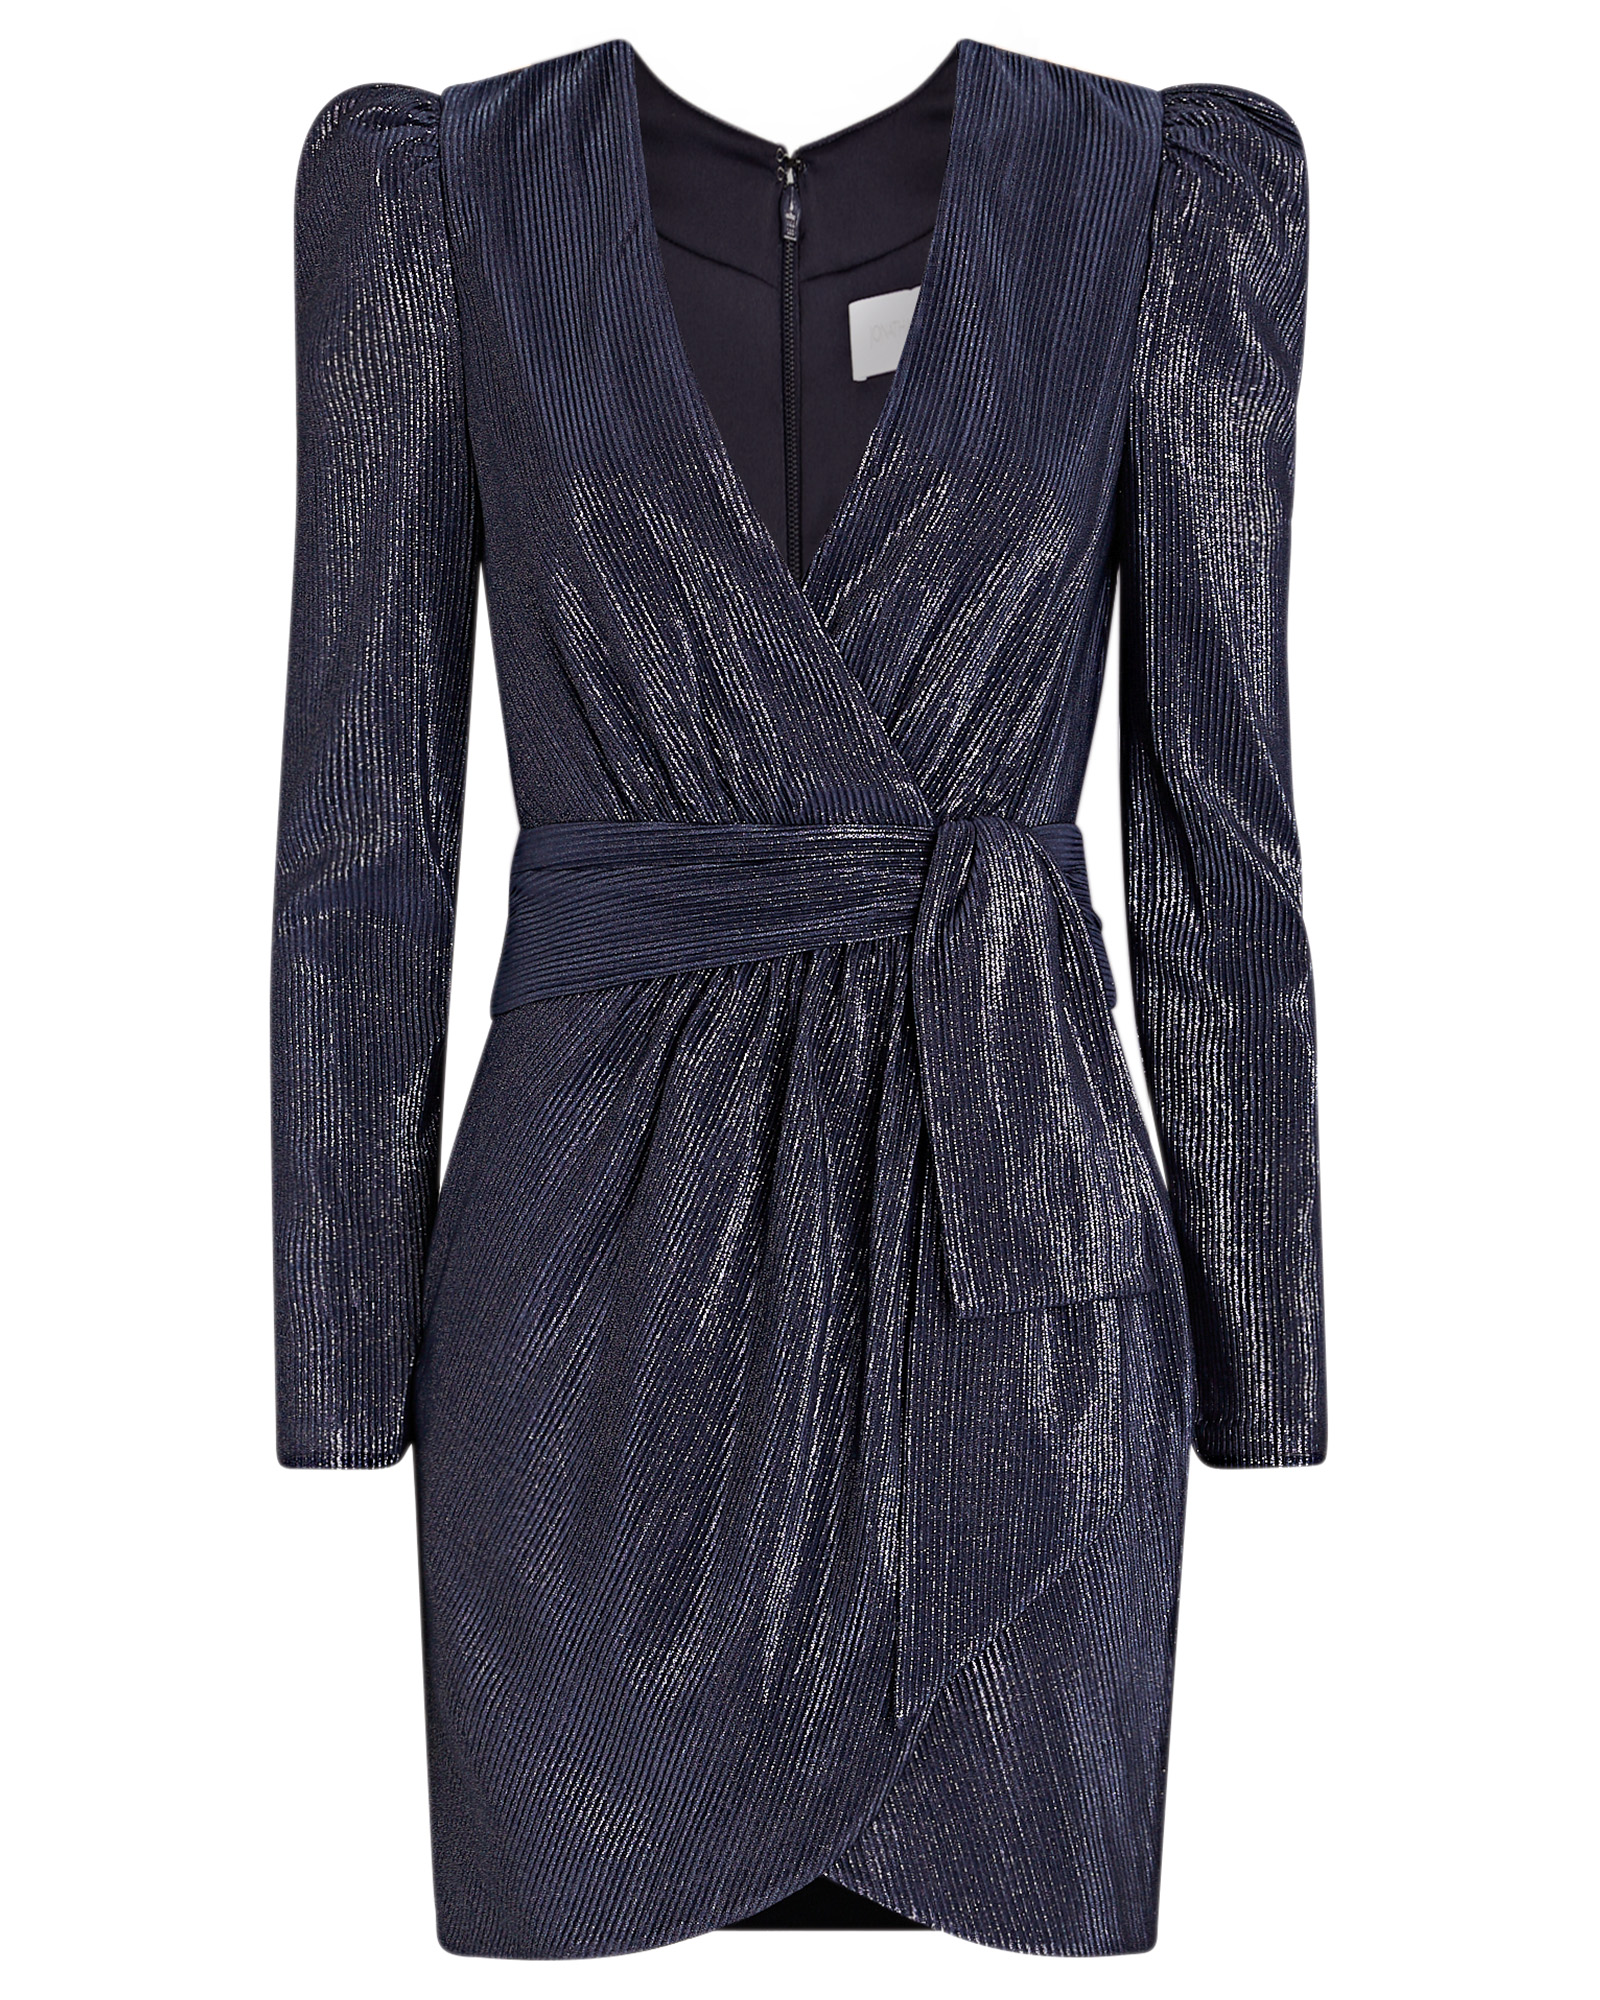 Jonathan Simkhai JONATHAN SIMKHAI METALLIC MINI WRAP DRESS